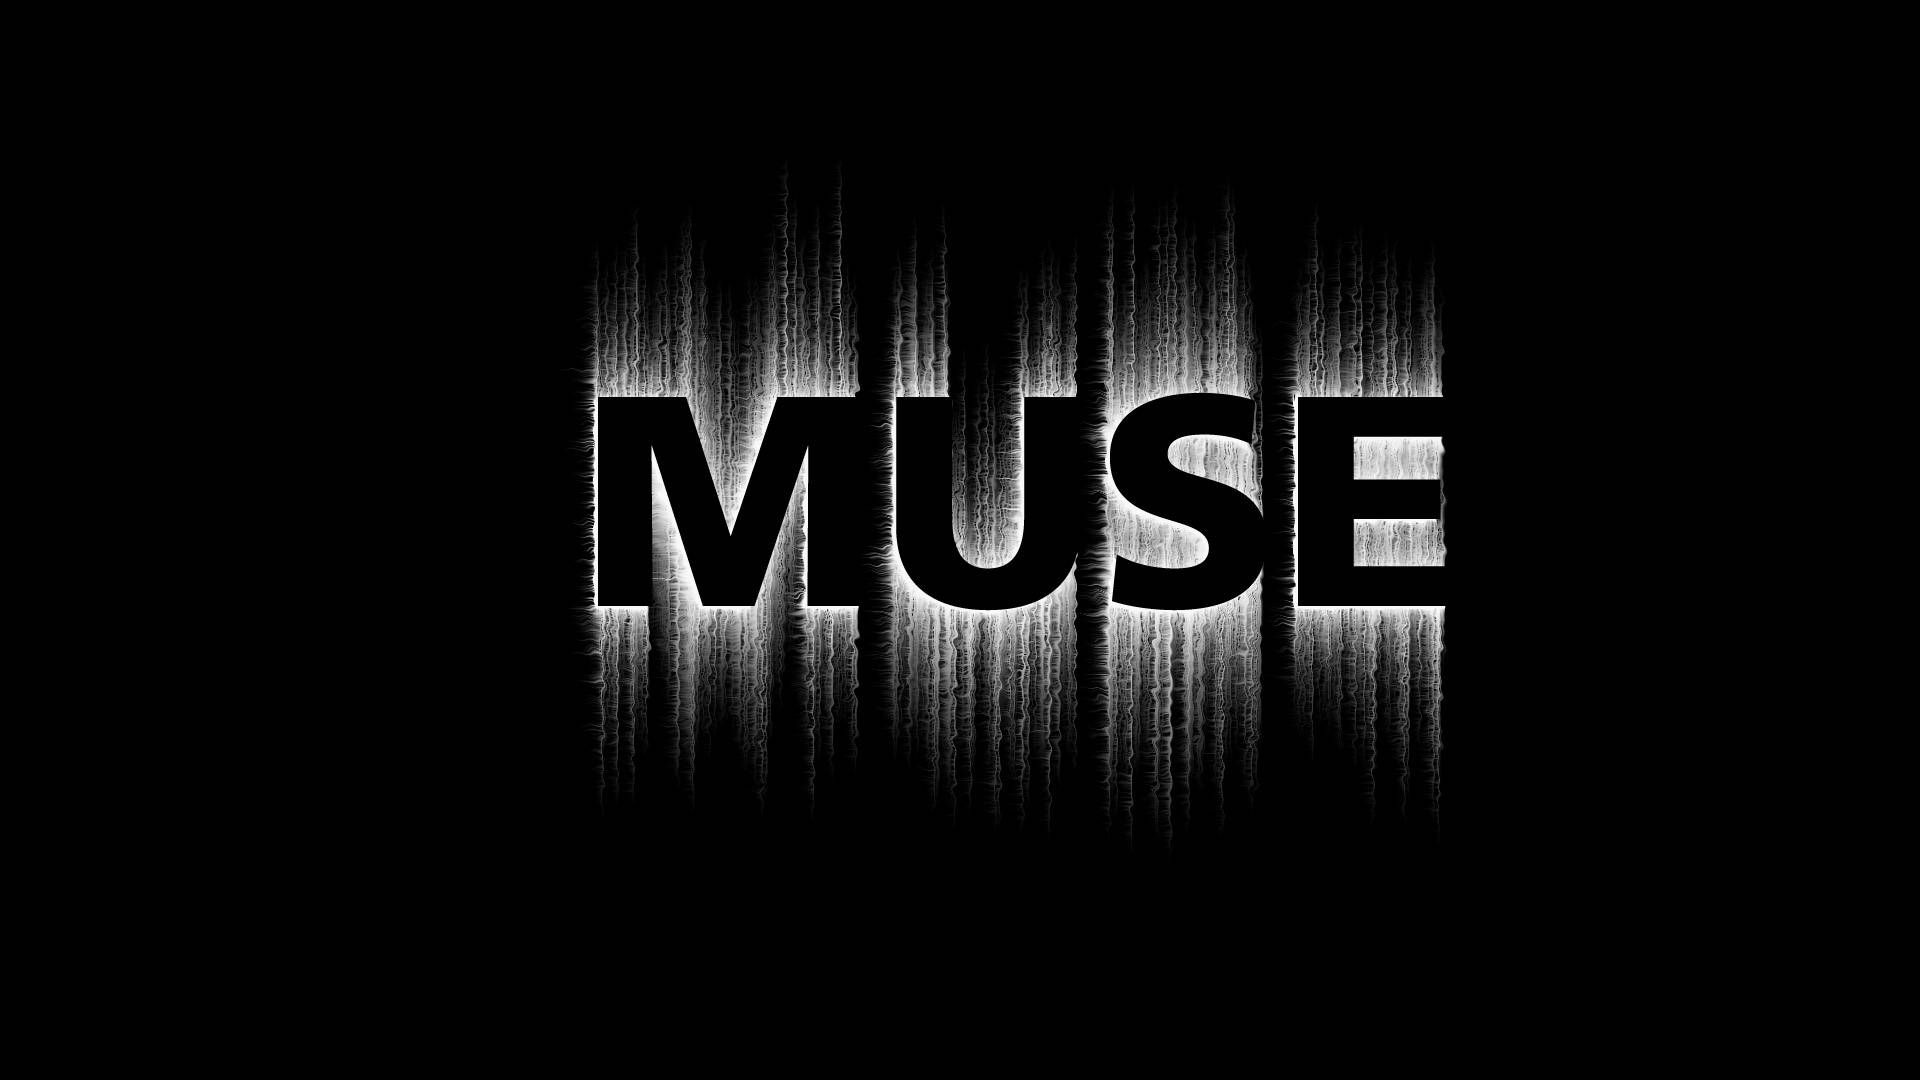 Muse wallpaper images free download 1024768 muse wallpaper 39 muse wallpaper images free download 1024768 muse wallpaper 39 wallpapers adorable voltagebd Image collections